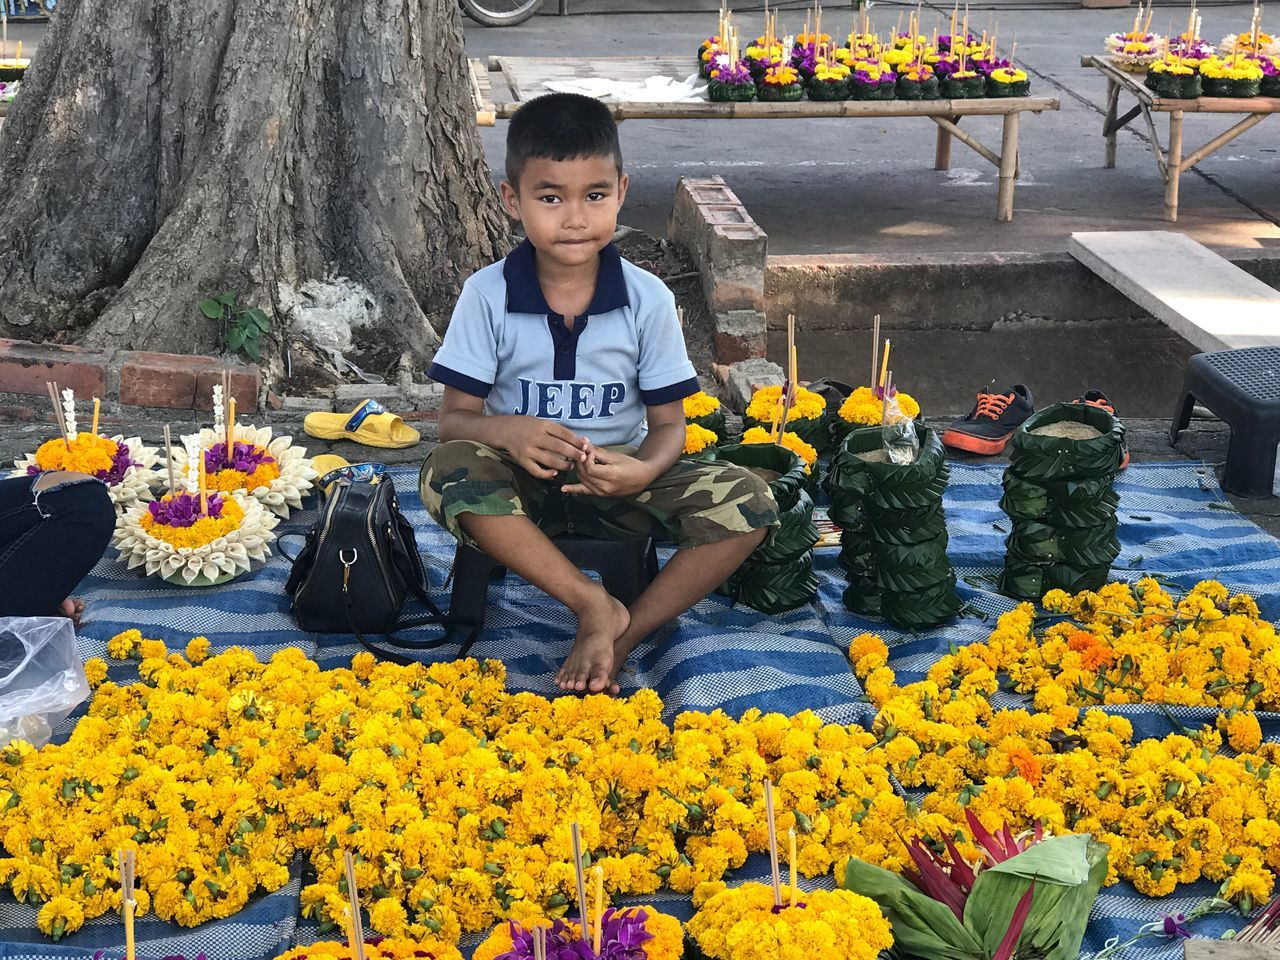 Boy Kratong Banana Leaf Bowl Asian  Asian Culture ASIA Thailand Thaiculture Festival Flowers Yellow